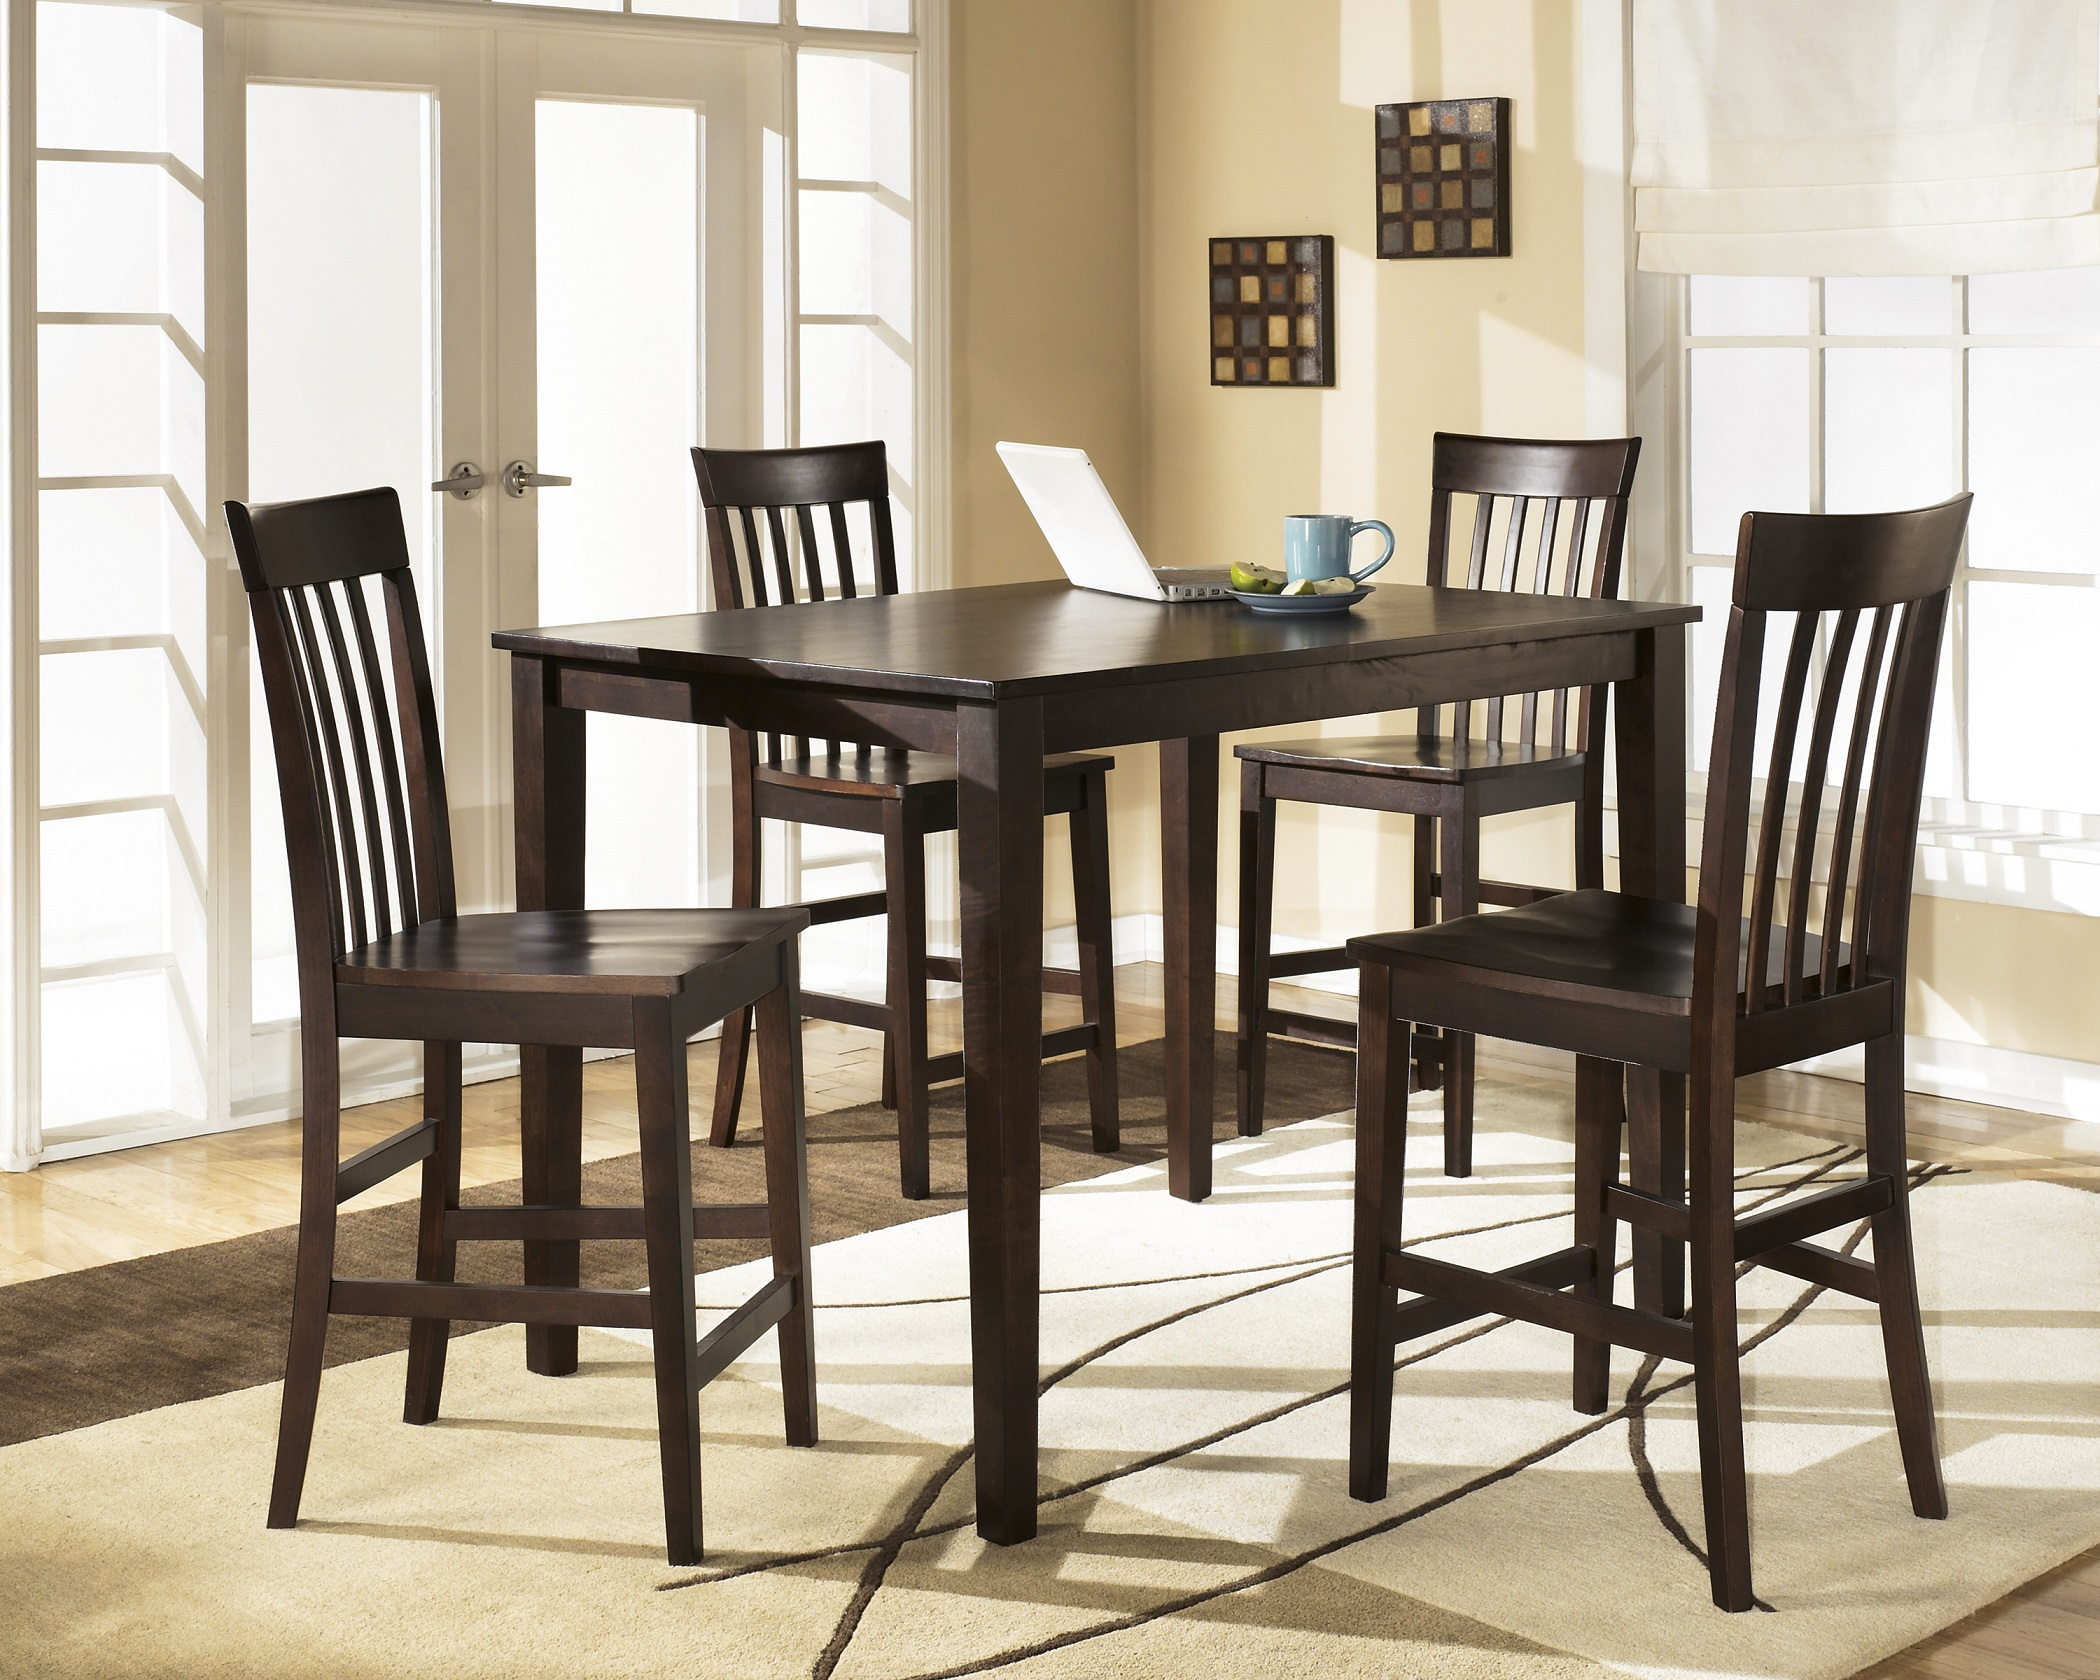 Hyland D258-223 5-Piece Dining Room Set with 1 Counter Height Table and 4 Bar Stools in Reddish Brown by Ashley Furniture